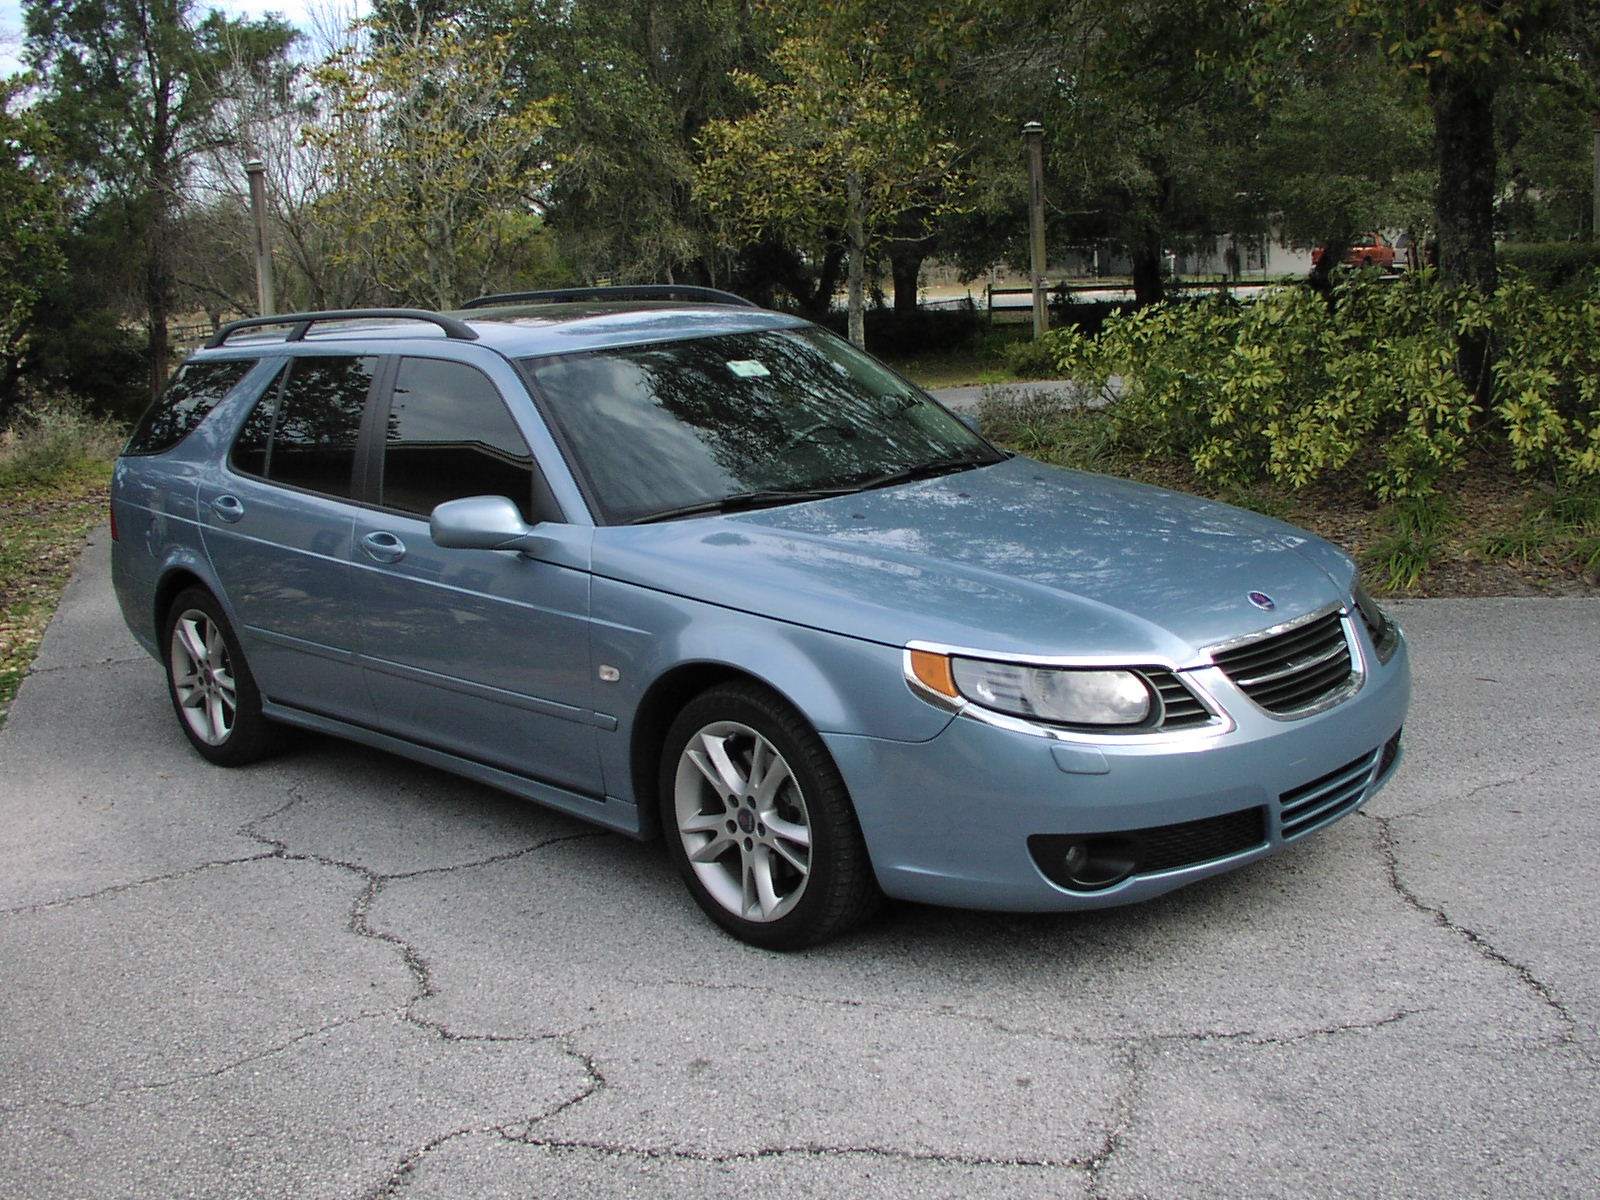 2009 saab 9 5 wagon pictures information and specs auto. Black Bedroom Furniture Sets. Home Design Ideas